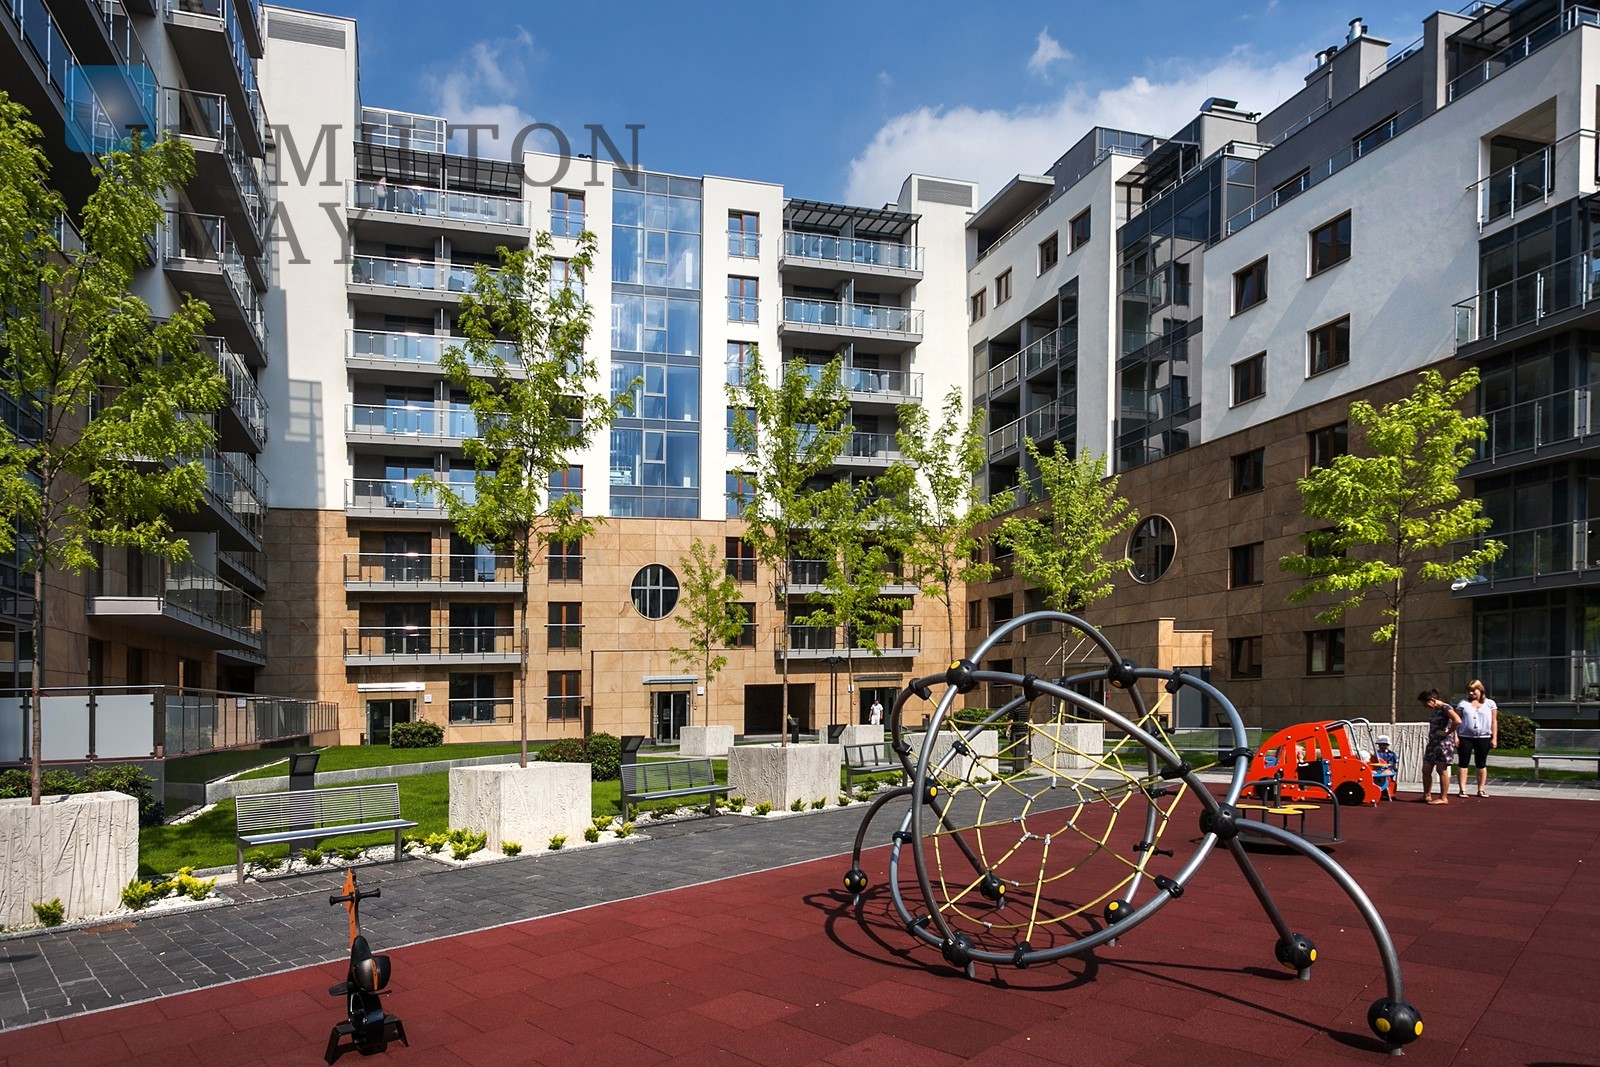 Wislane Tarasy Krakow development photo